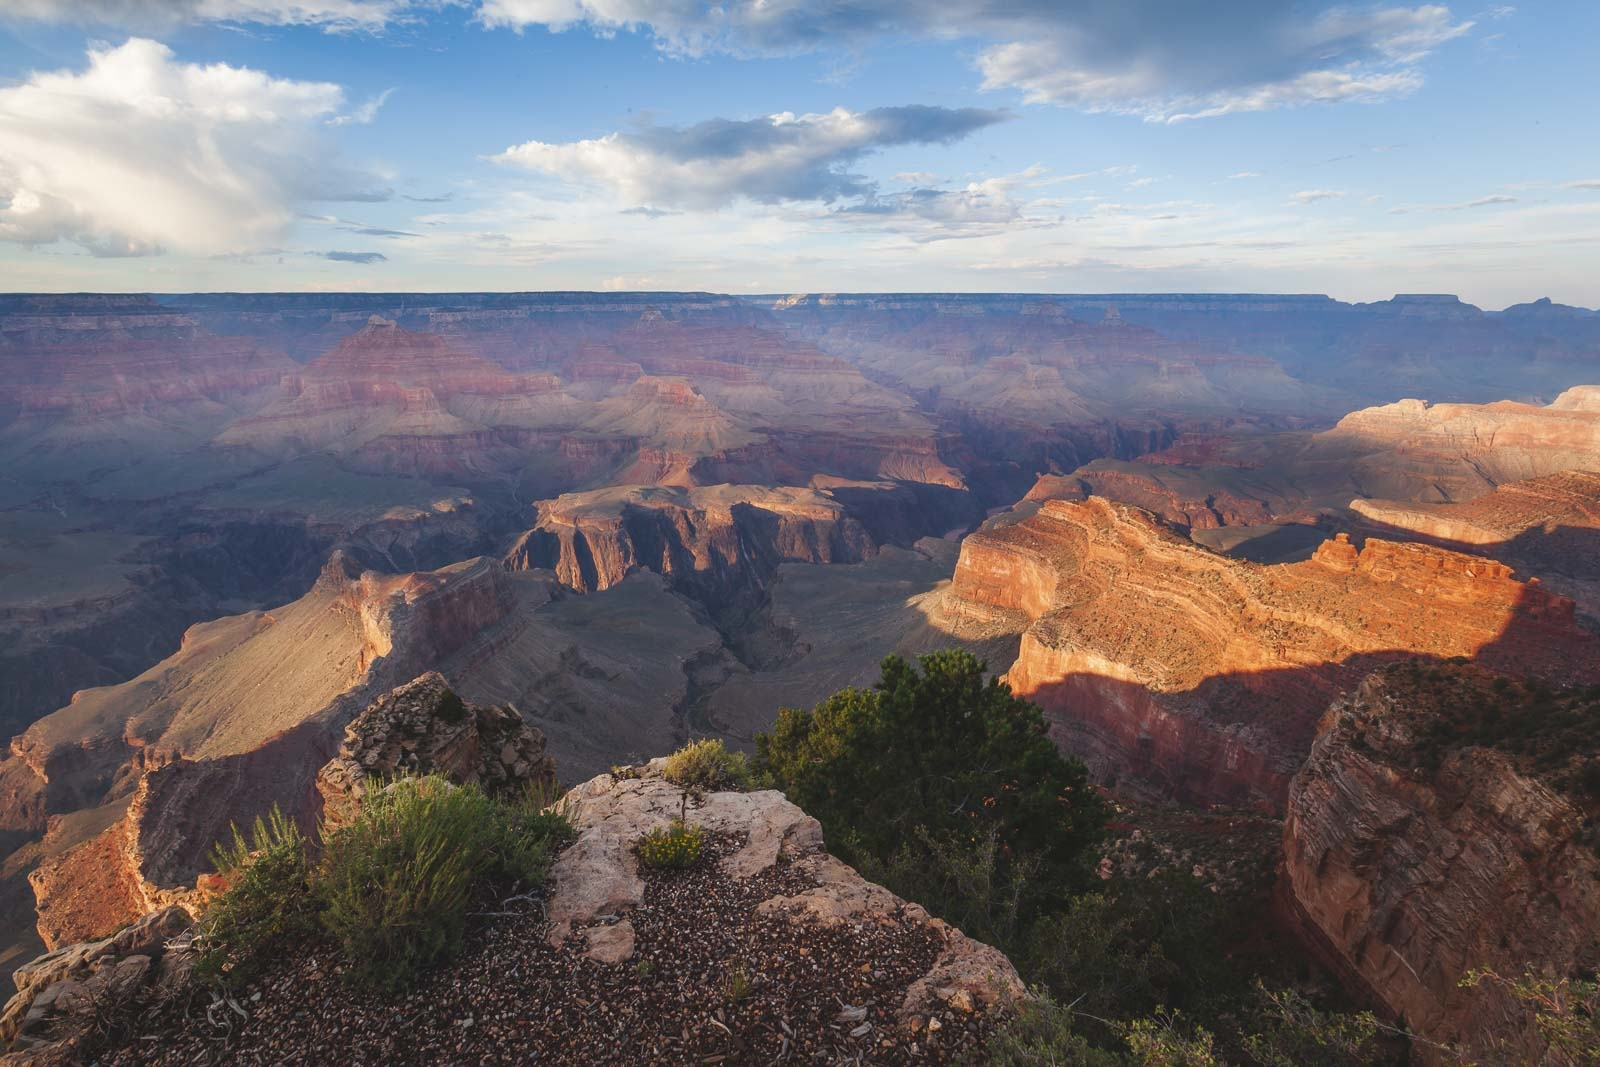 Soth Rim of the Grand Canyon